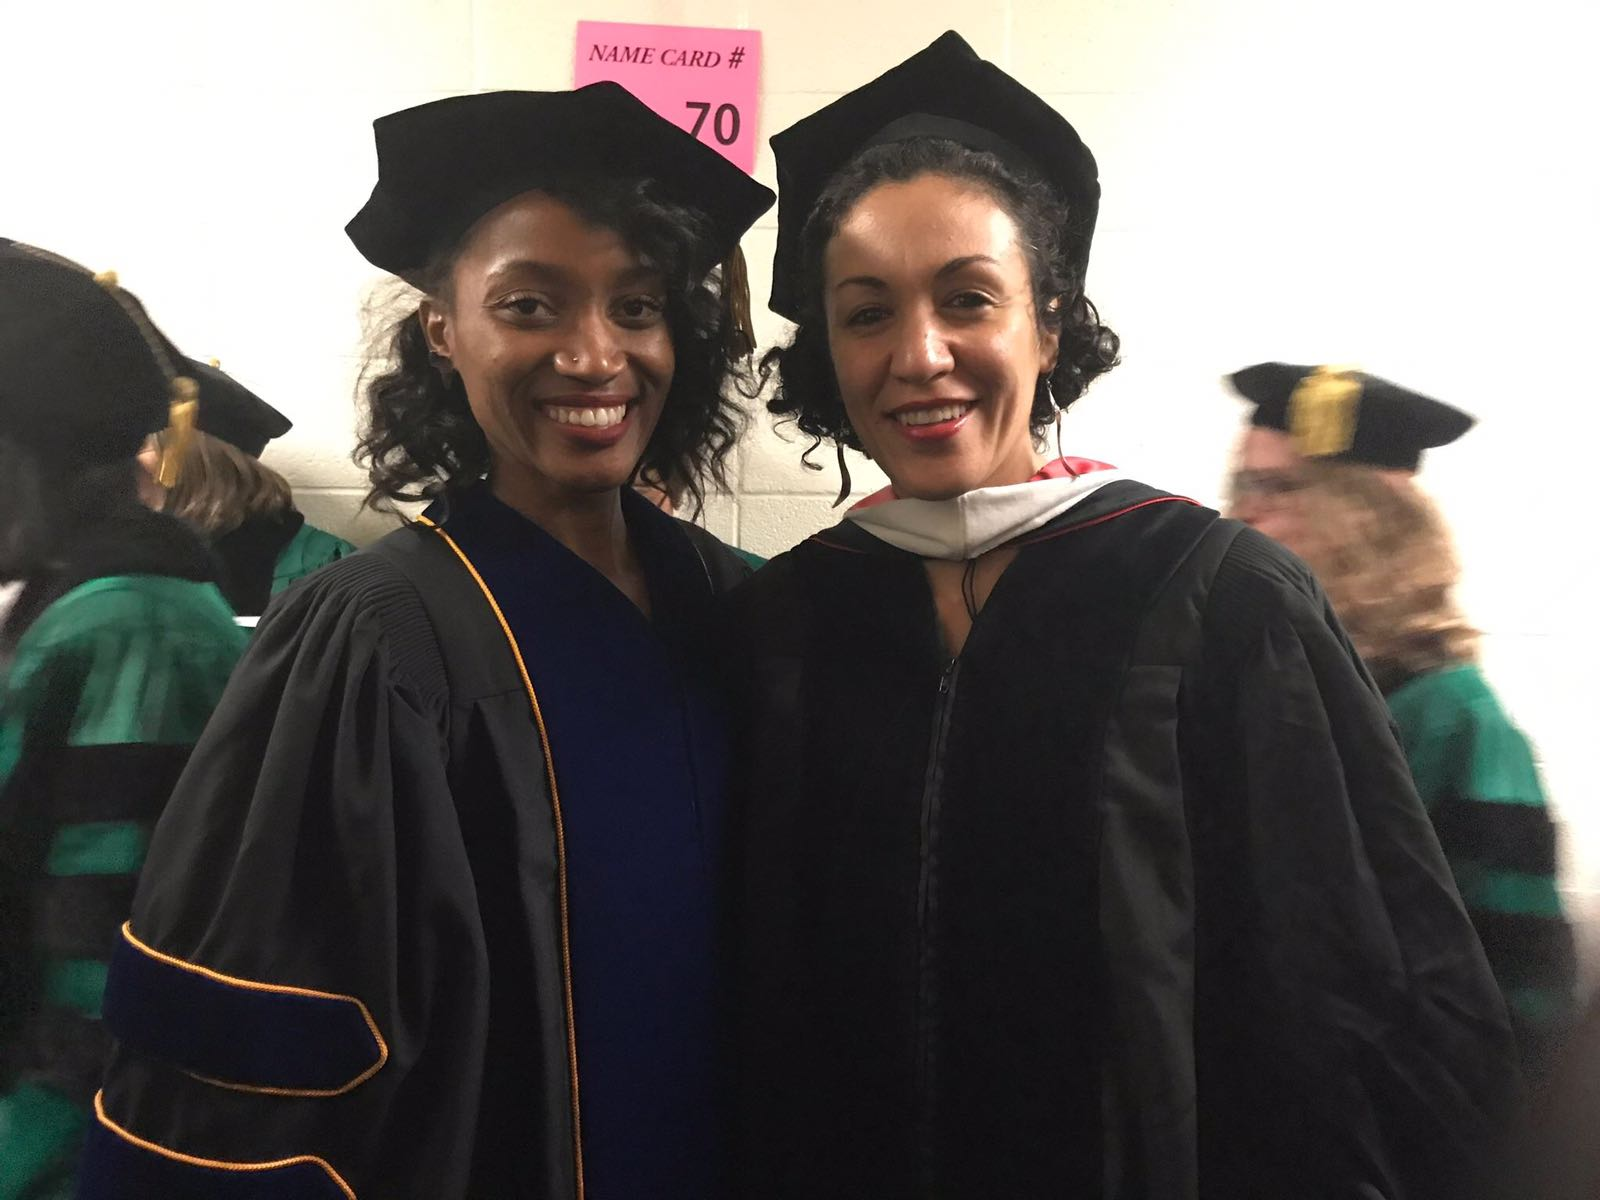 Tana Juko, 31, defies odds, sails her way to a Ph.D.